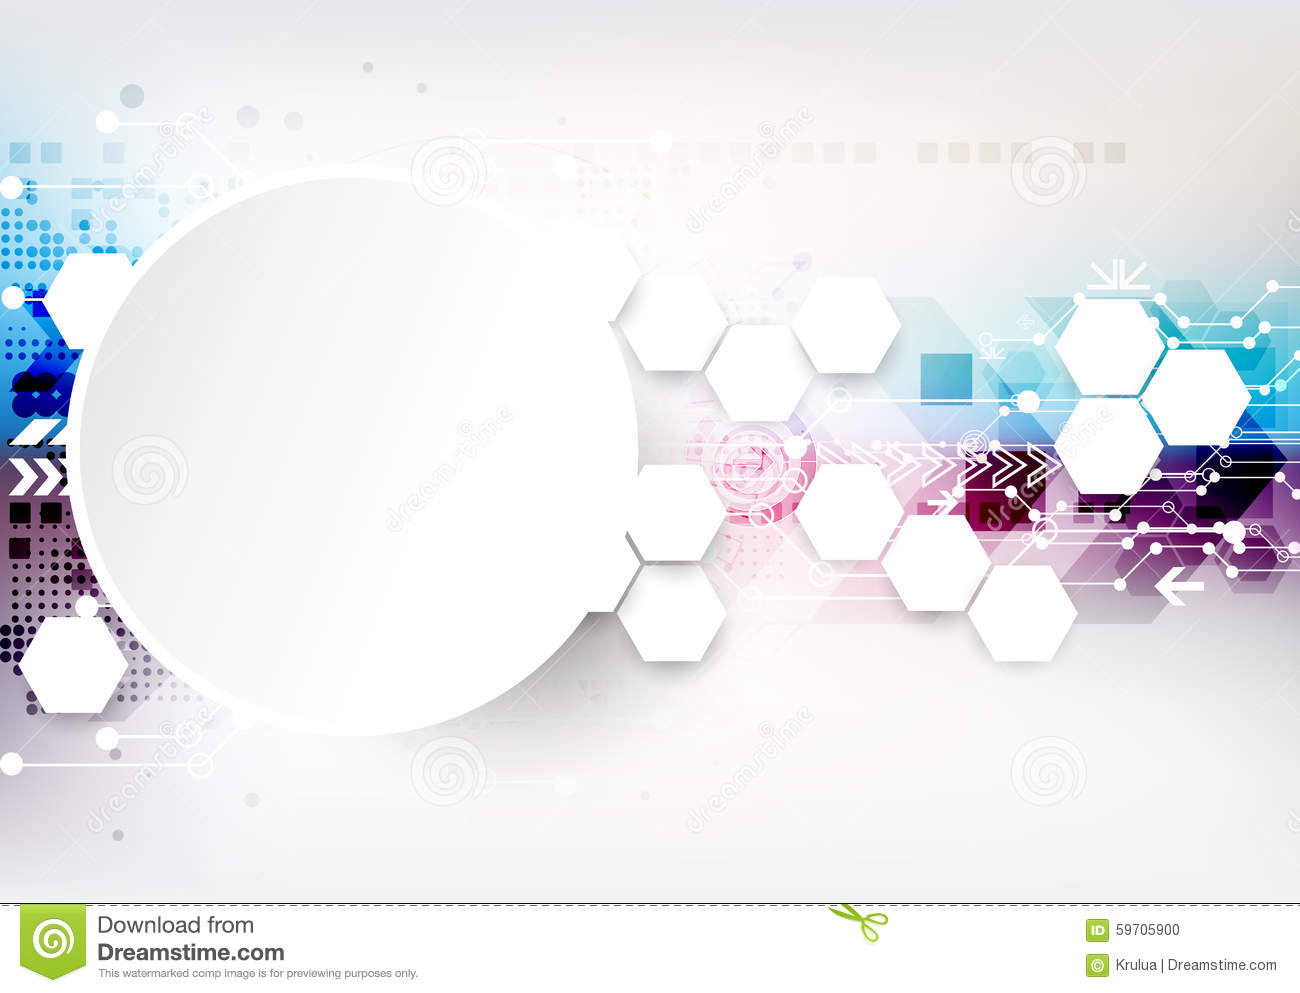 Colorful Techno Background Schematic. Stock Vector - Illustration of